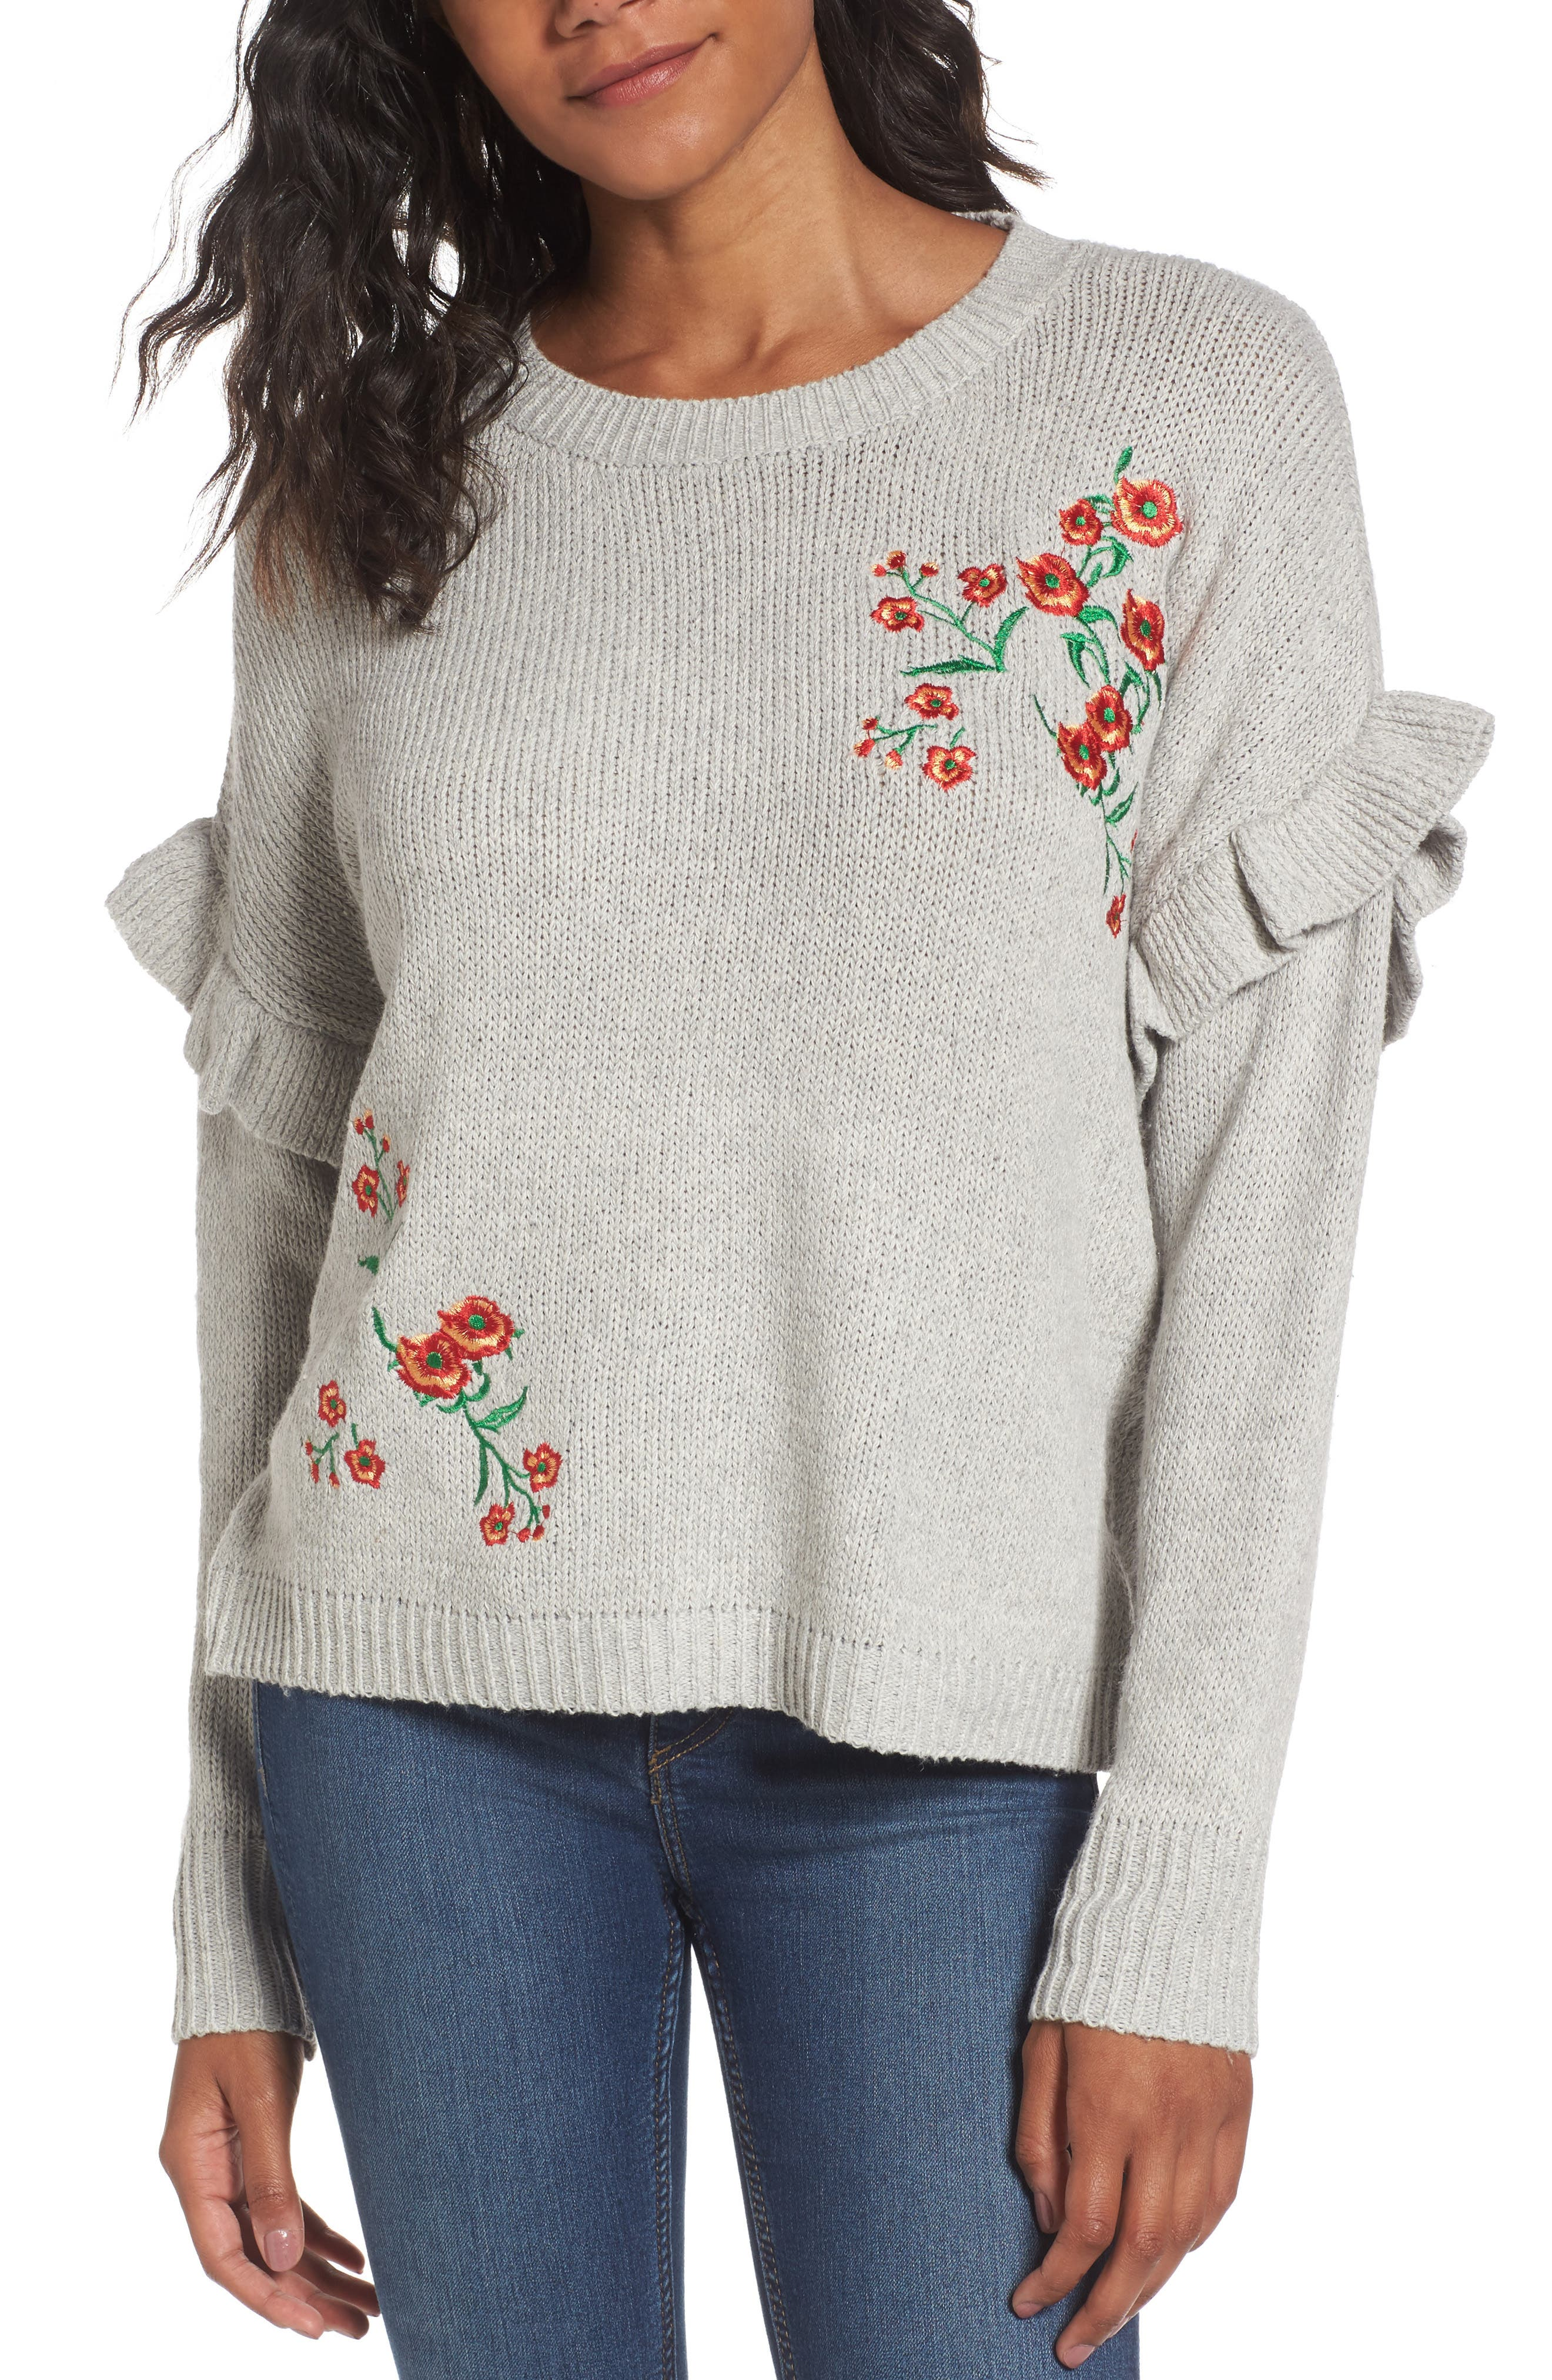 Ruffle Sleeve Embroidered Sweater,                             Main thumbnail 1, color,                             Grey